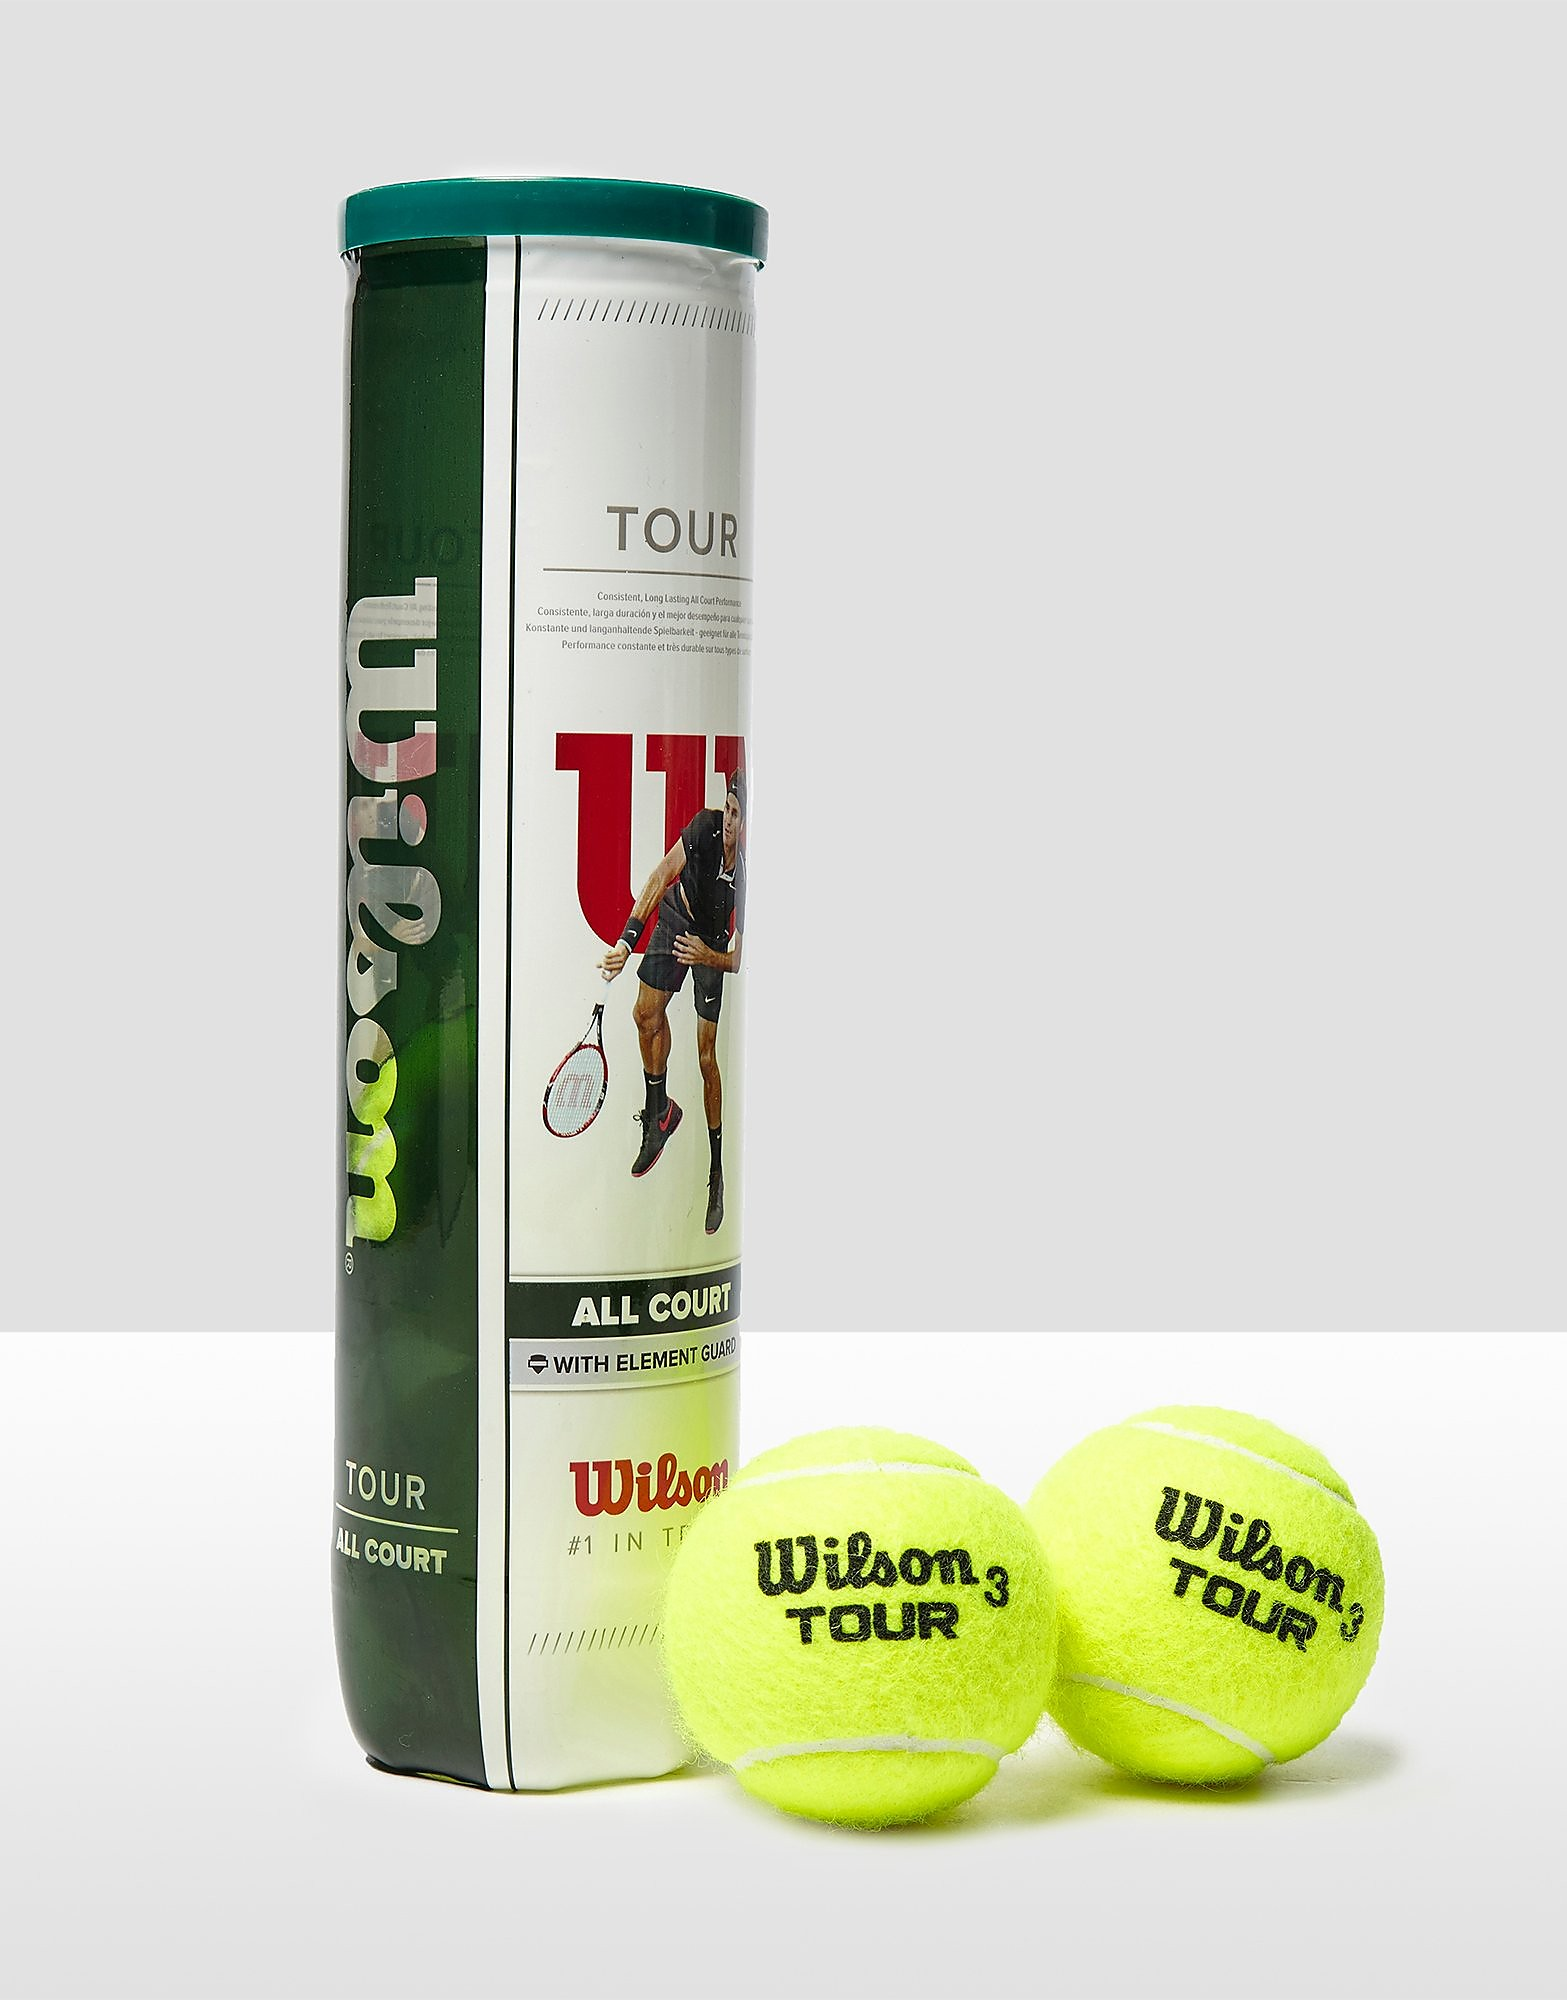 Wilson Tour Tennis Balls (4 Ball Can)